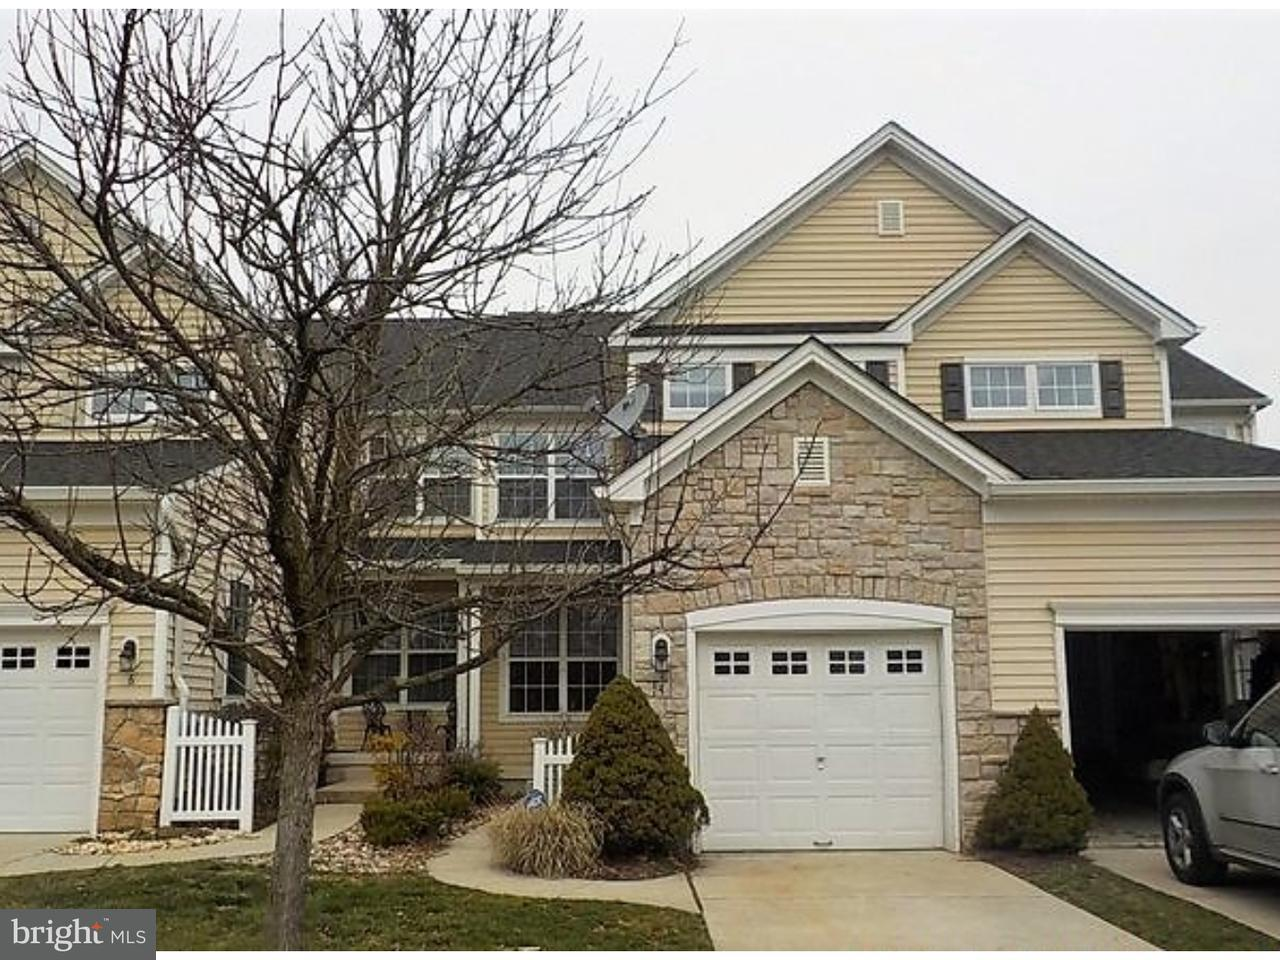 Townhouse for Sale at 4 STERN LIGHT Drive Mount Laurel, New Jersey 08054 United States